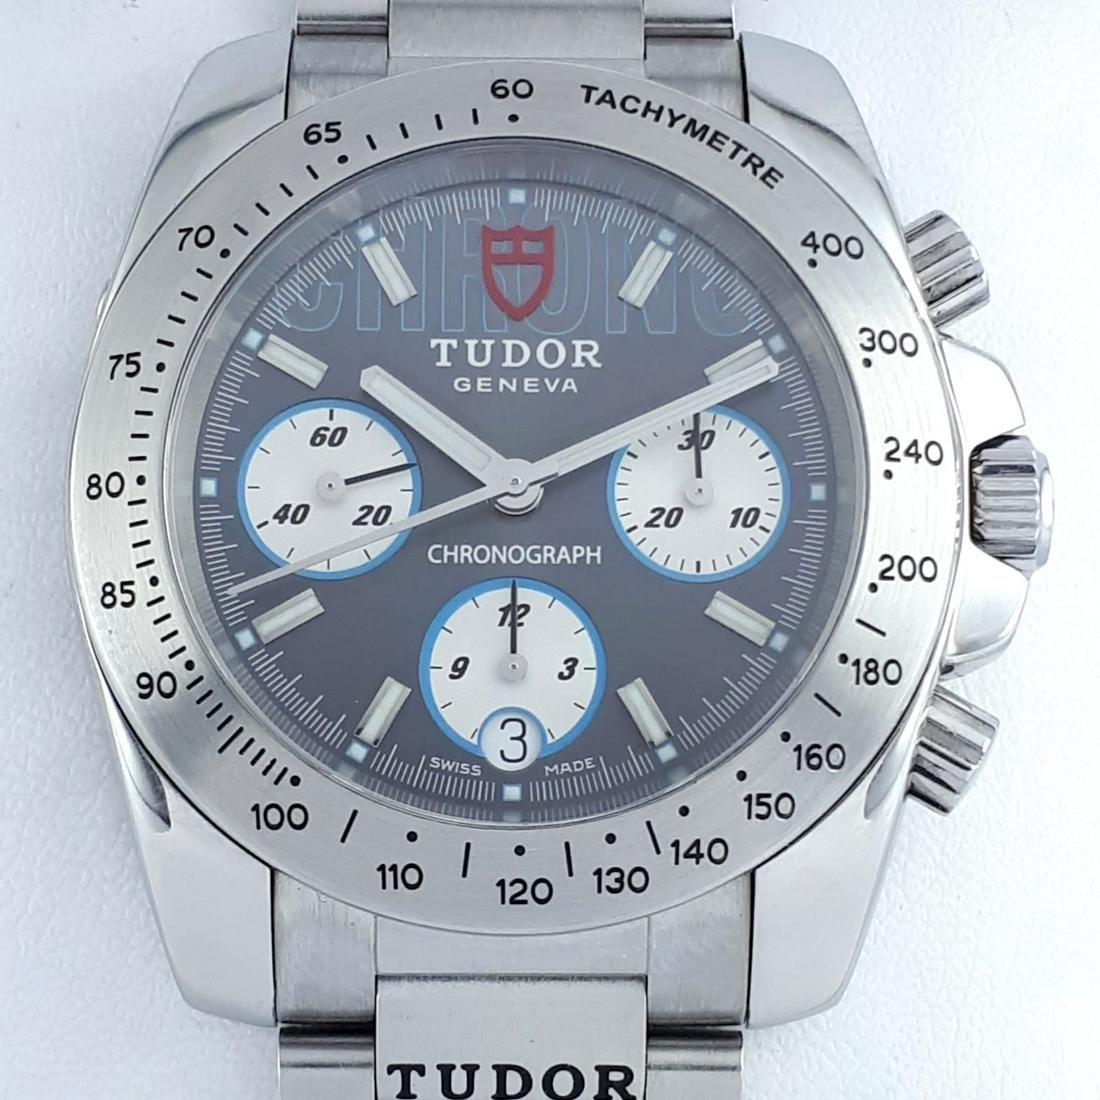 Tudor - Sport Chronograph Grey Dial - Ref: 8220 - Men -